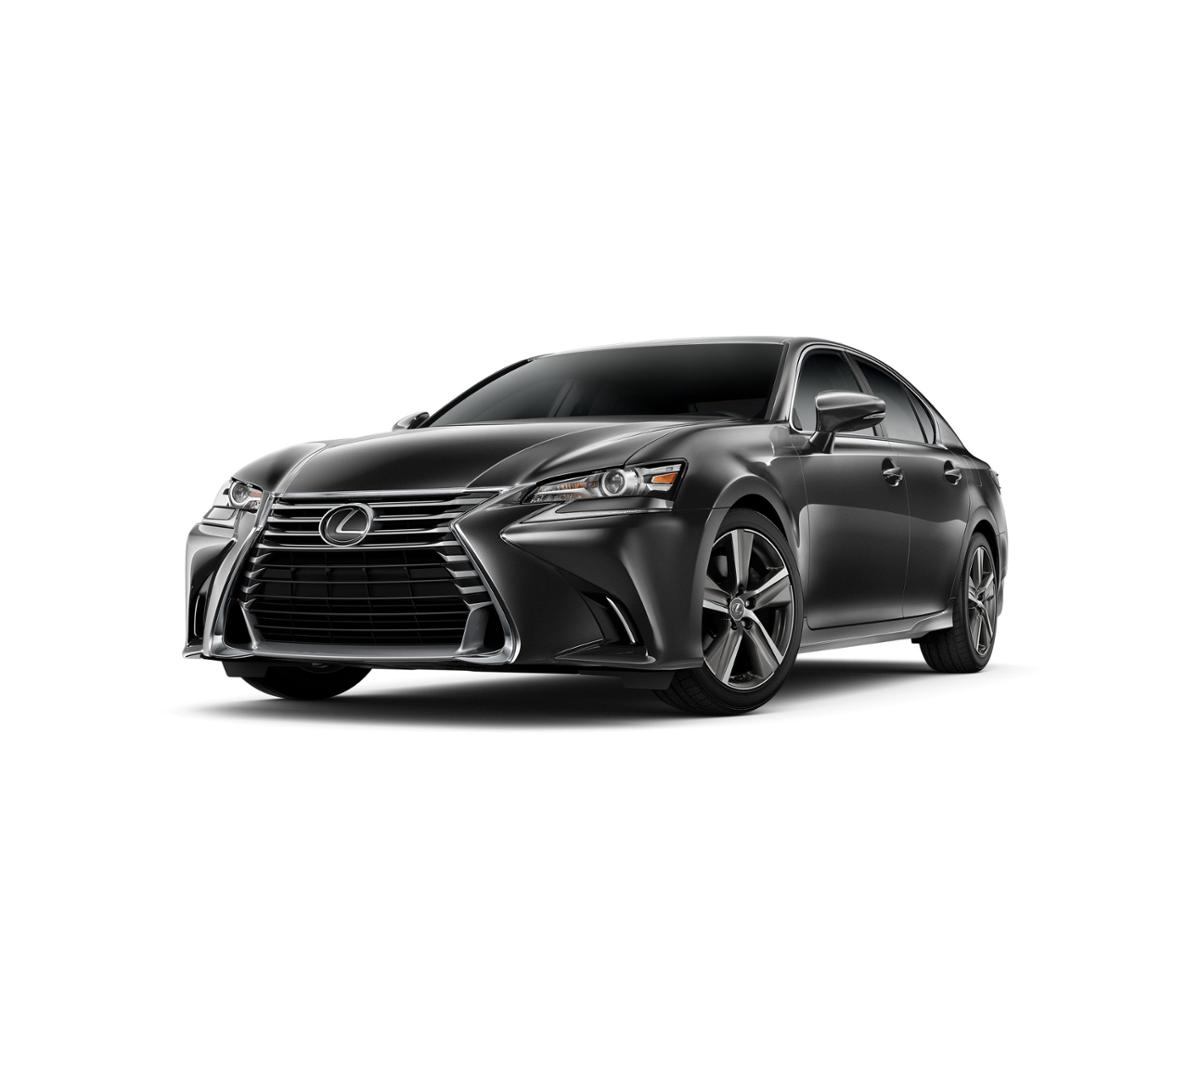 2018 Lexus GS 350 Vehicle Photo in Fort Worth, TX 76132